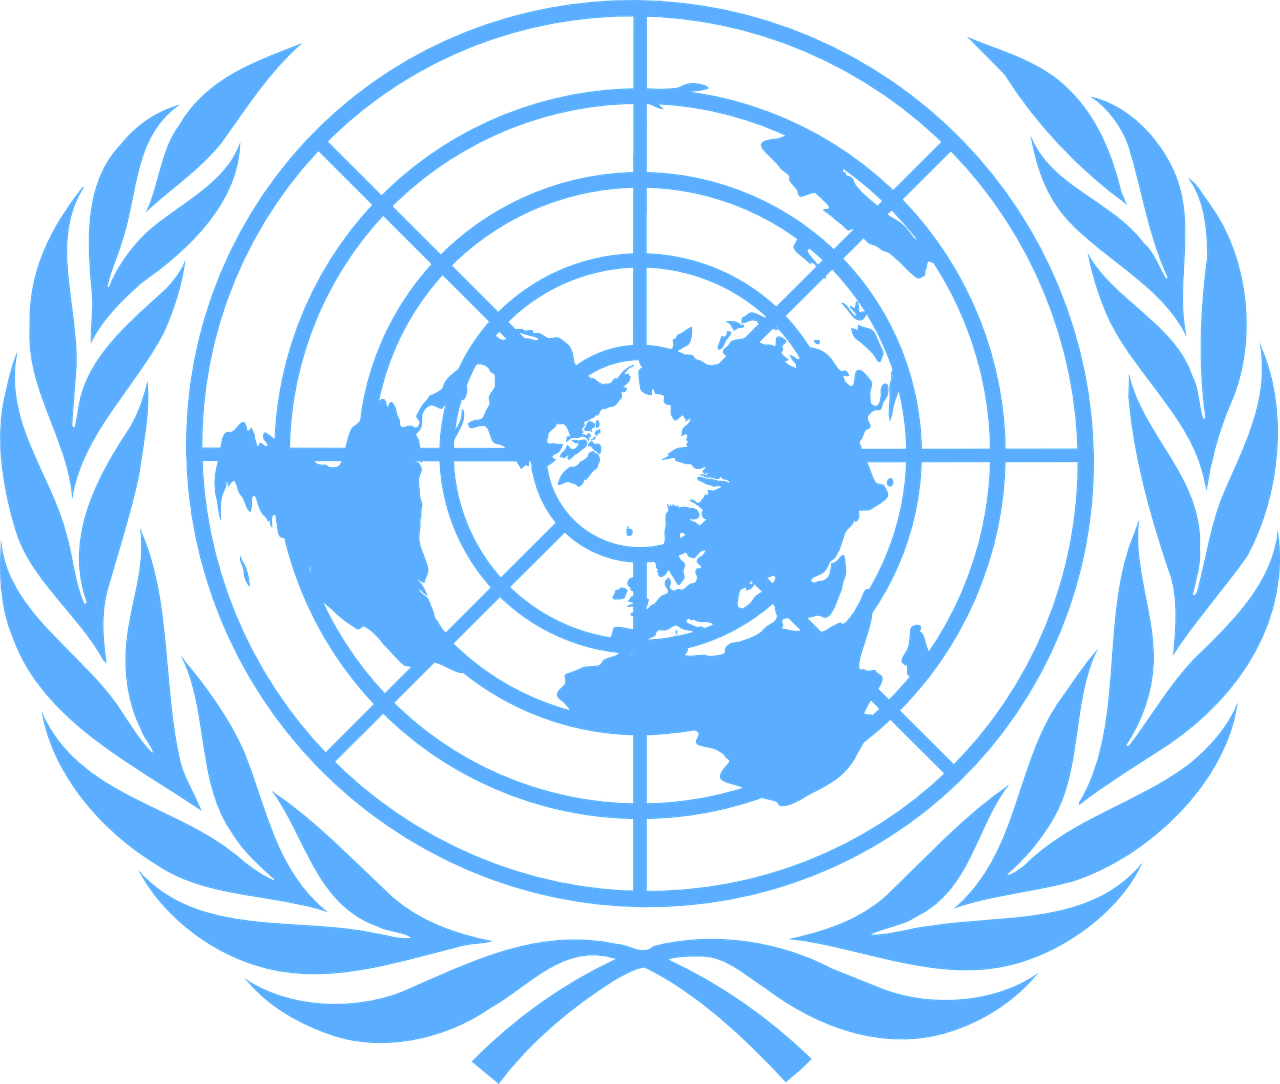 United Nations PNG logo free download, UN logo PNG.